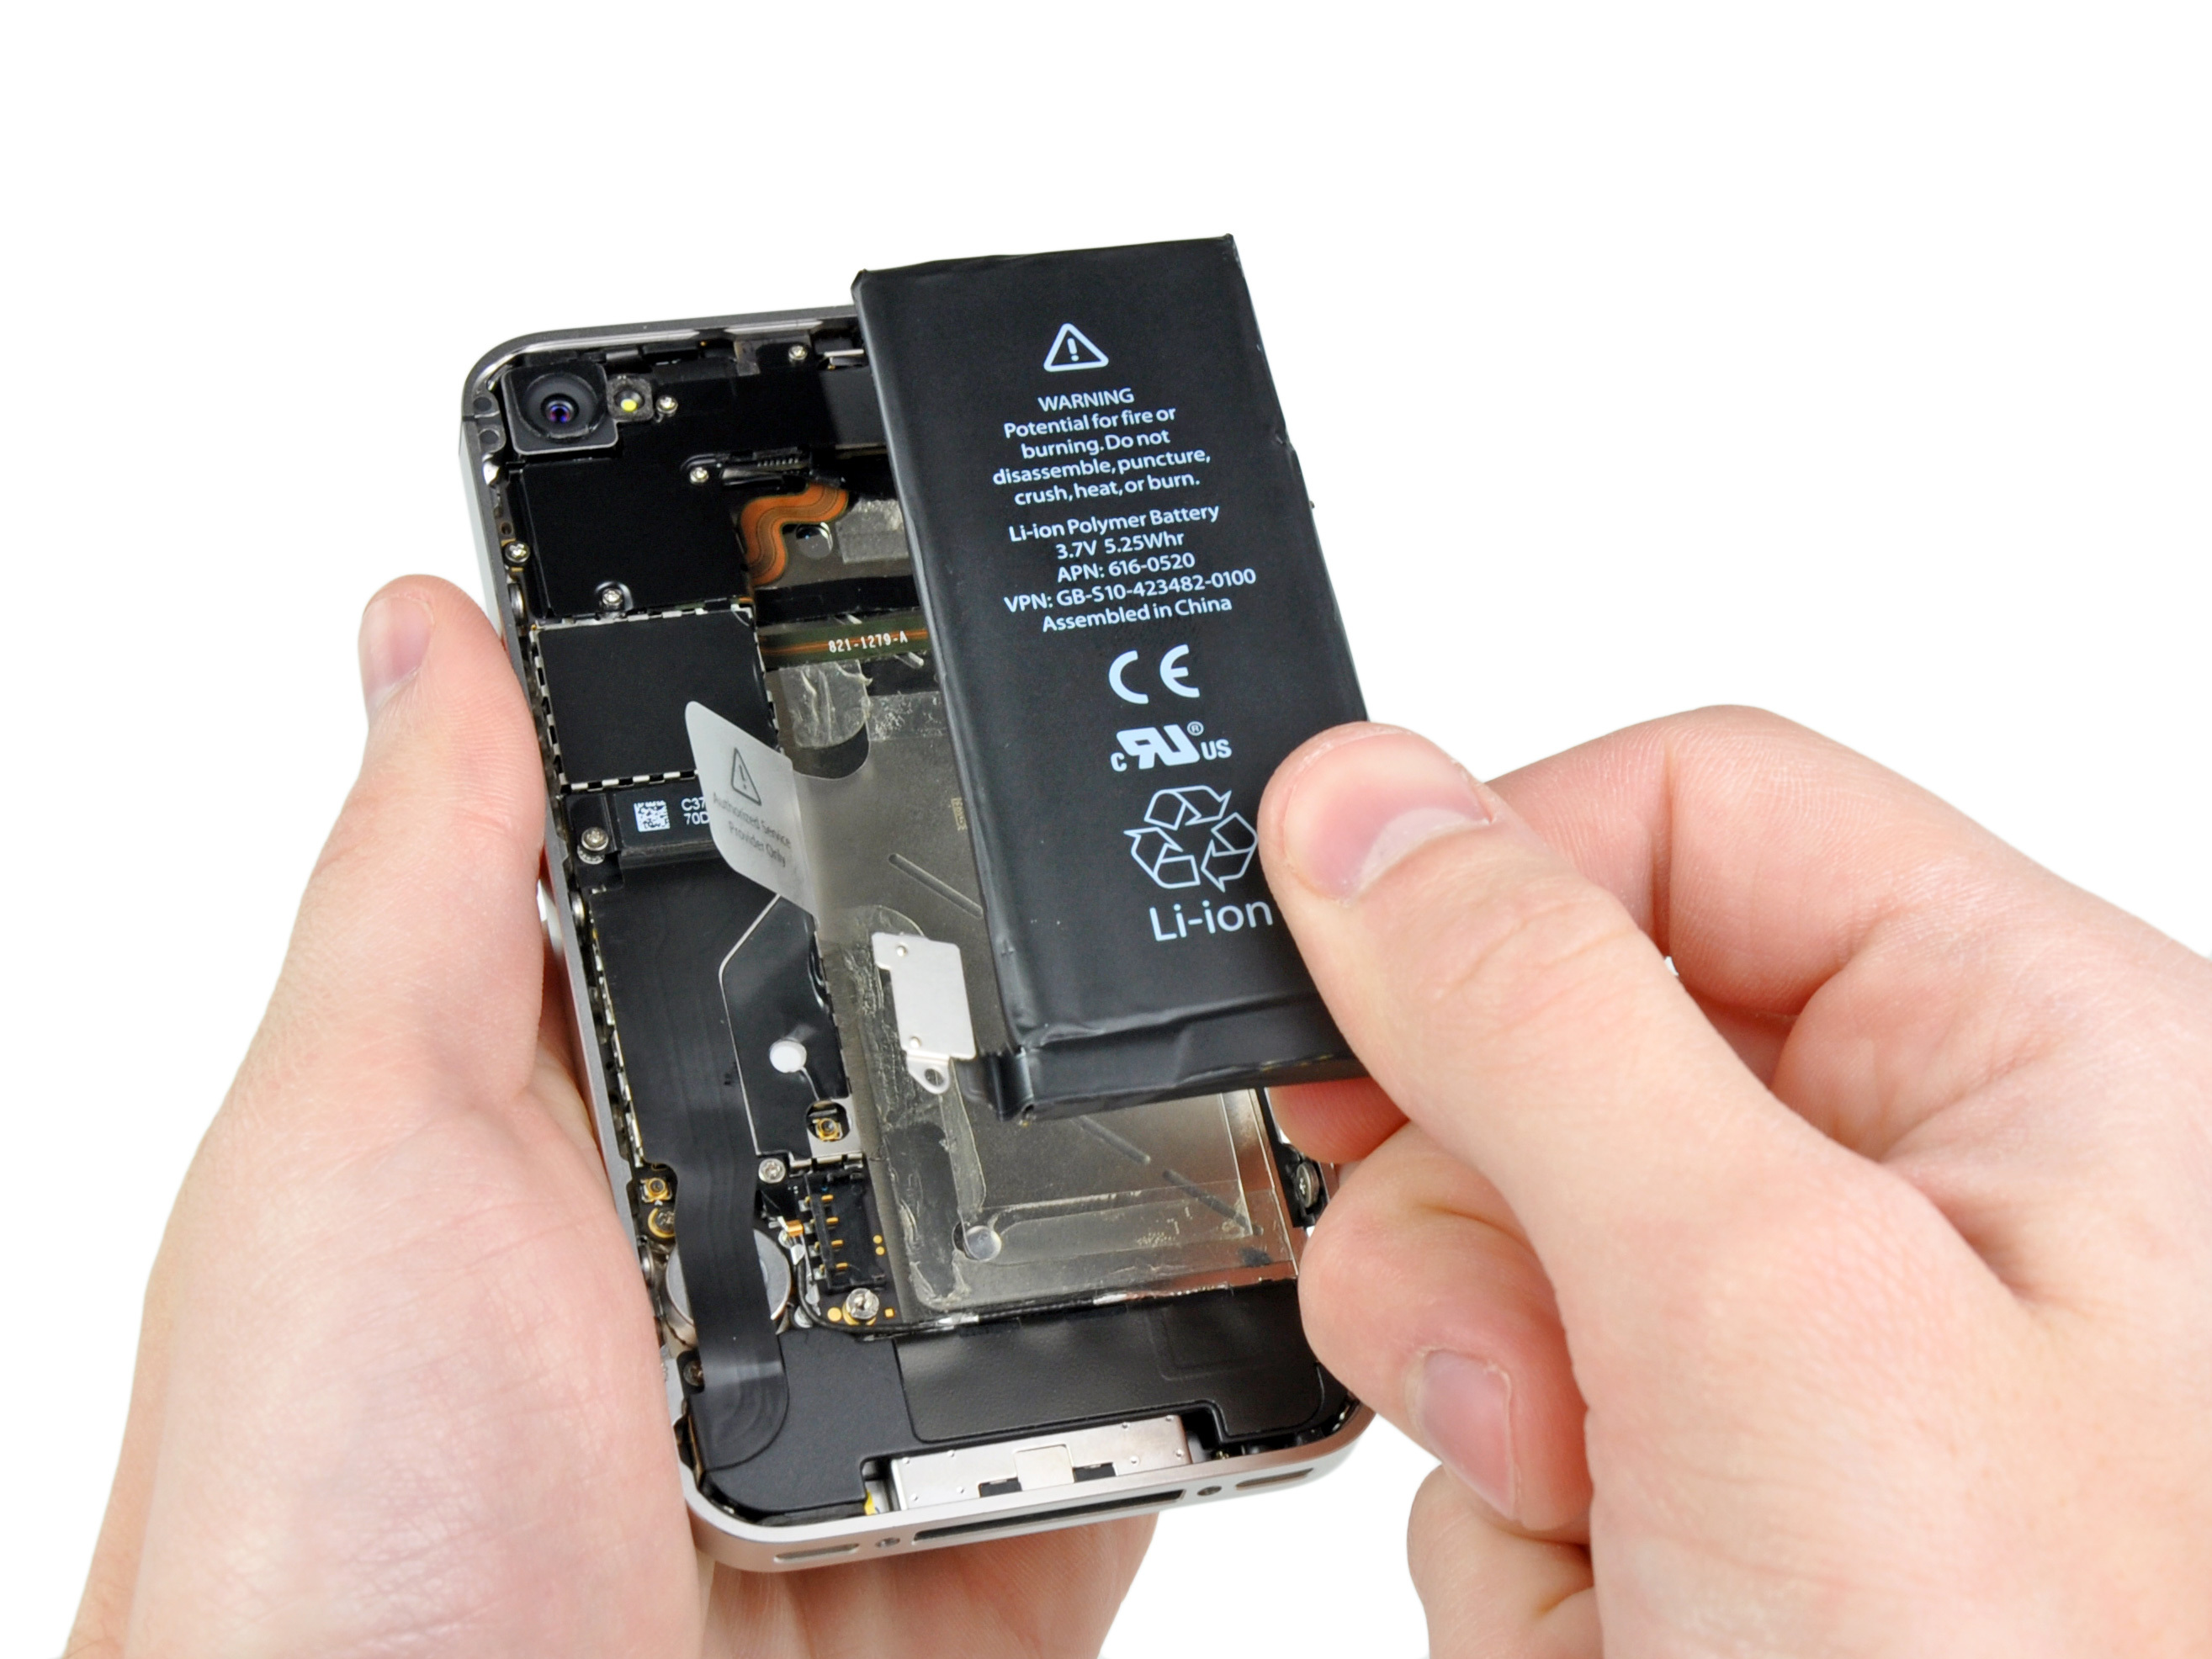 iphone 4 cdma repair ifixit rh ifixit com iPhone Repair iPhone 4S Verison